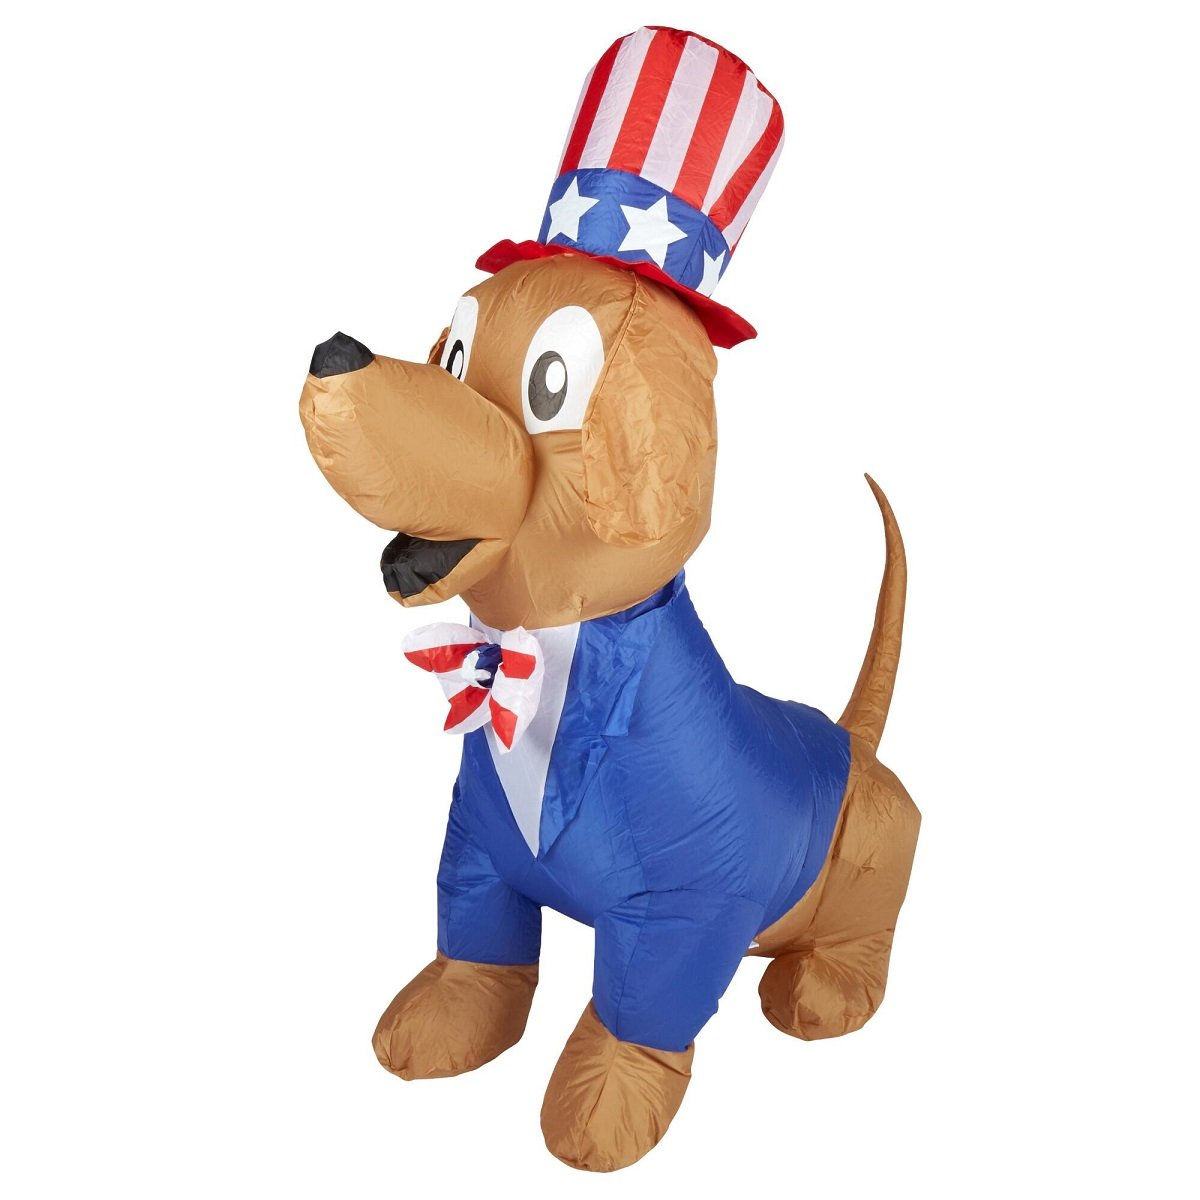 Patriotic Inflatable 5' Uncle Sam Puppy Dog By Gemmy by Airblown Inflatable